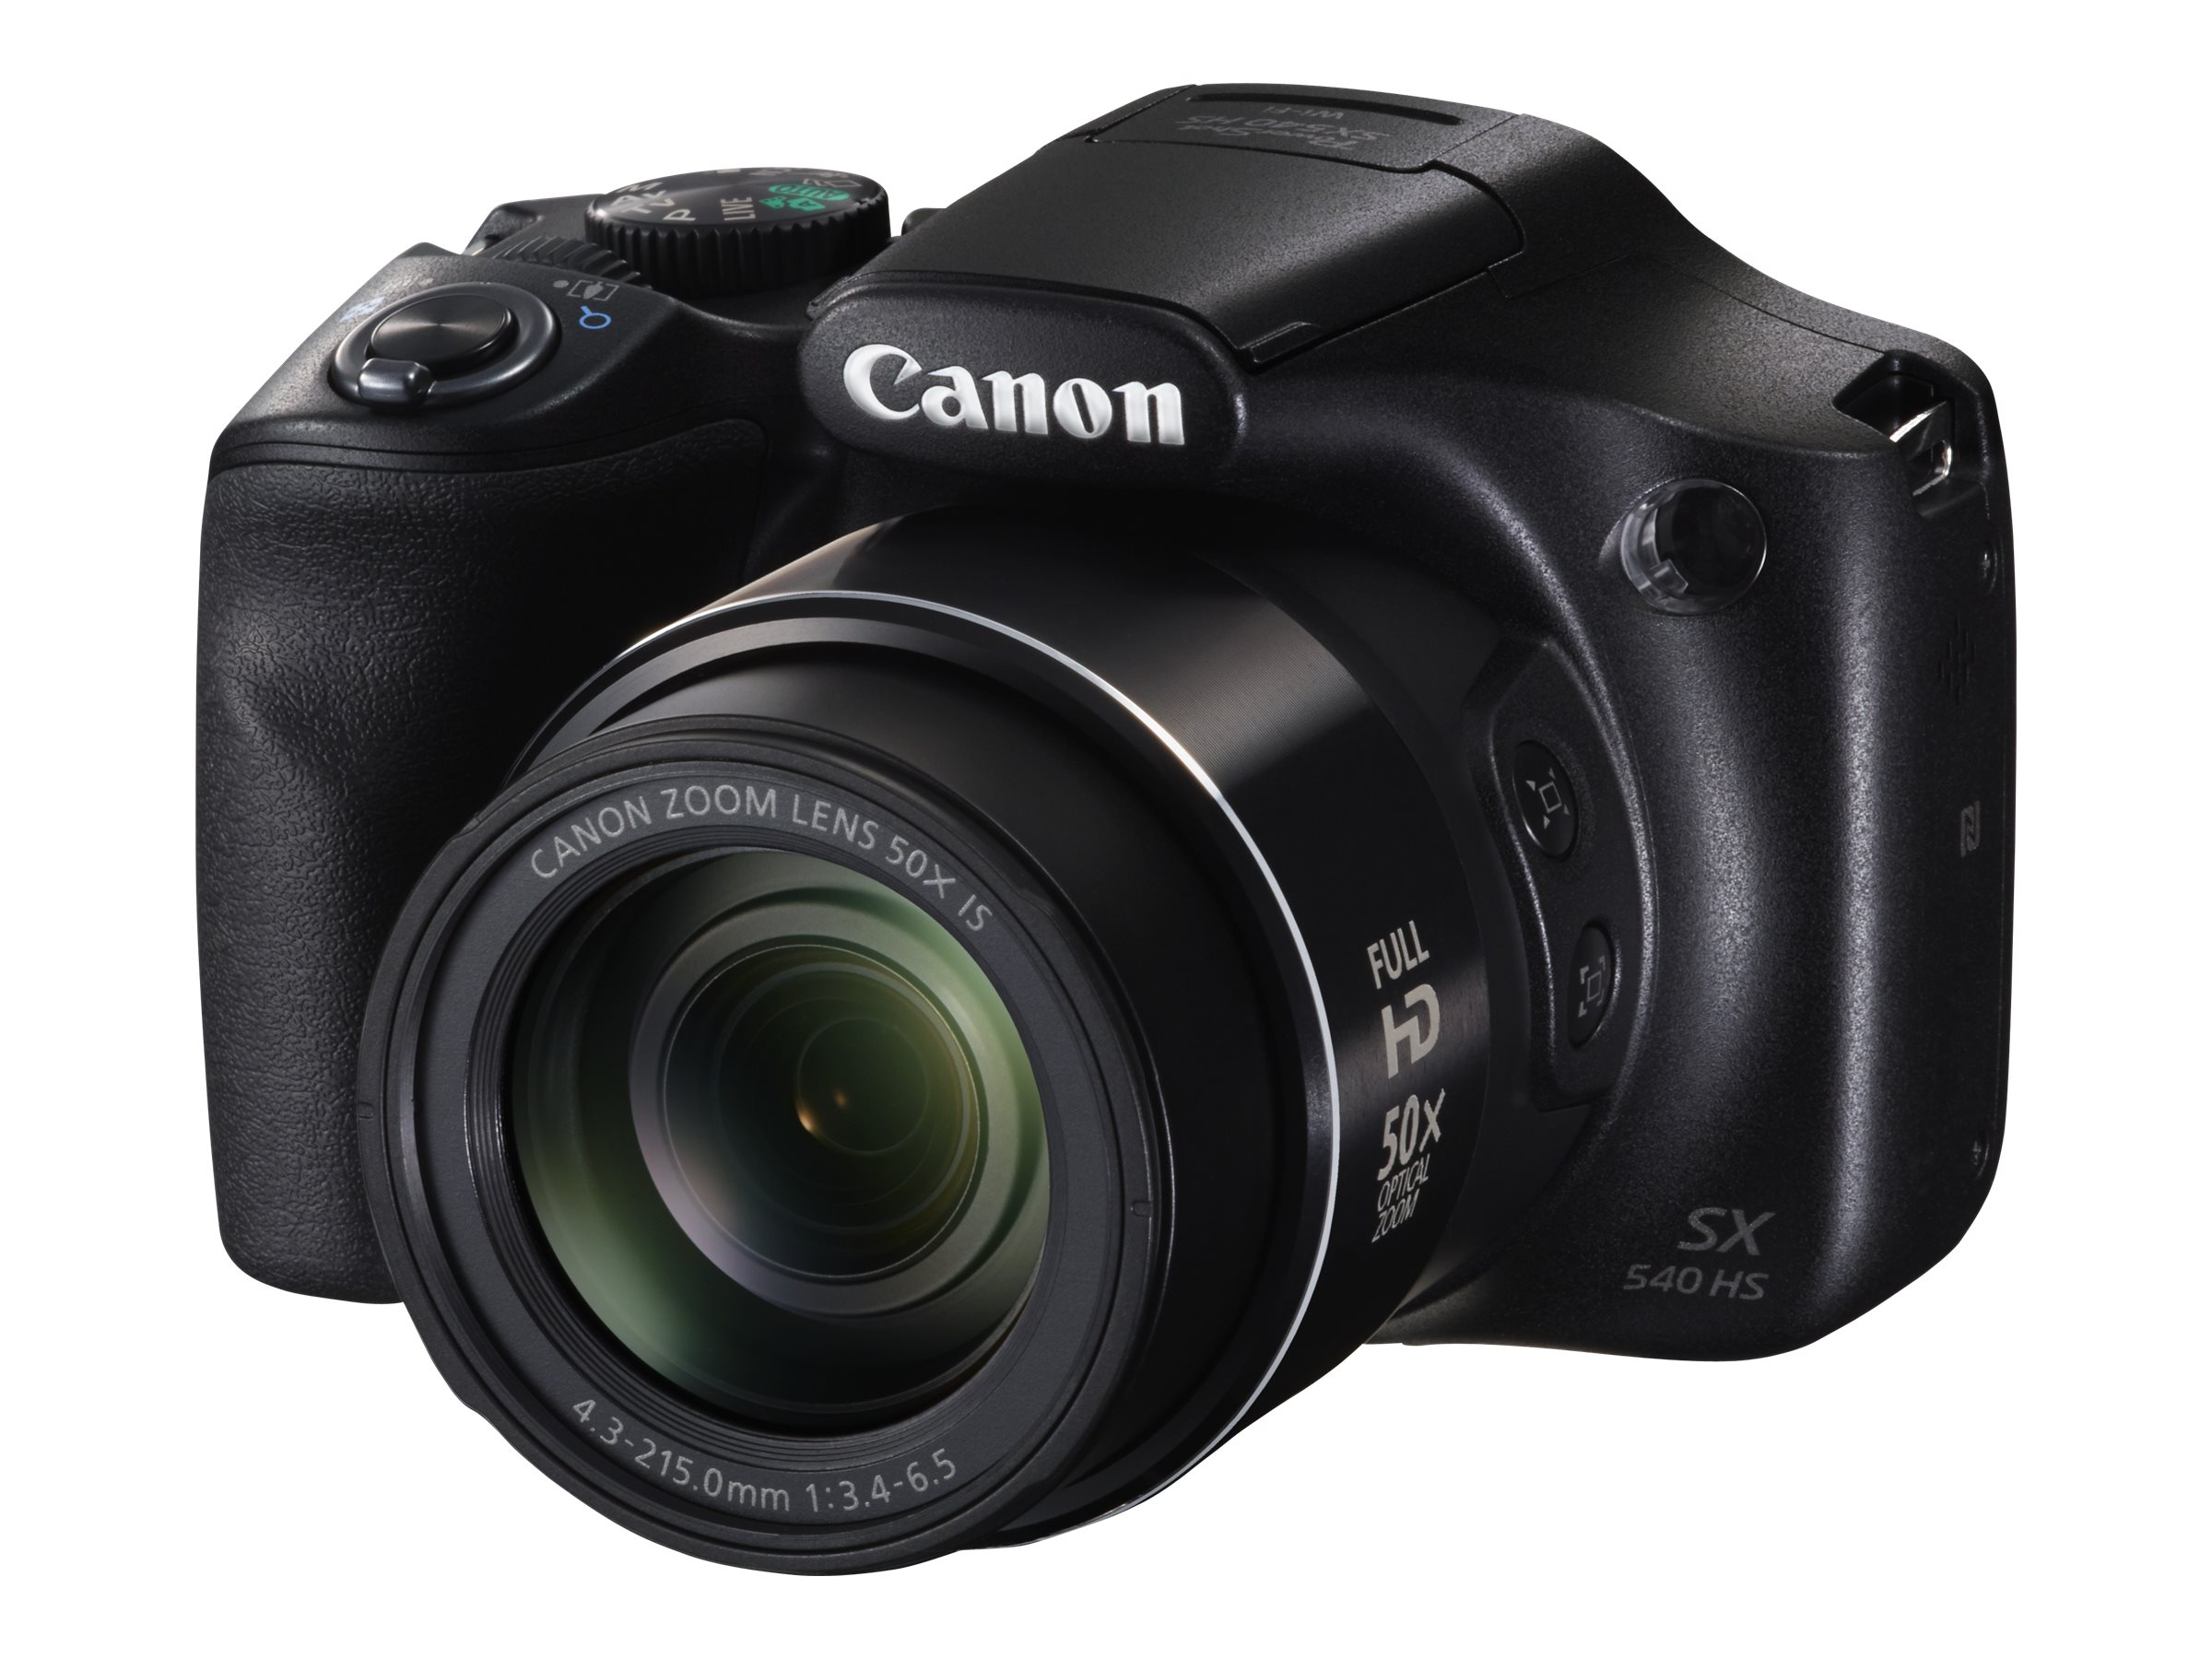 Canon PowerShot SX540 HS Digital Camera, Black, 1067C001